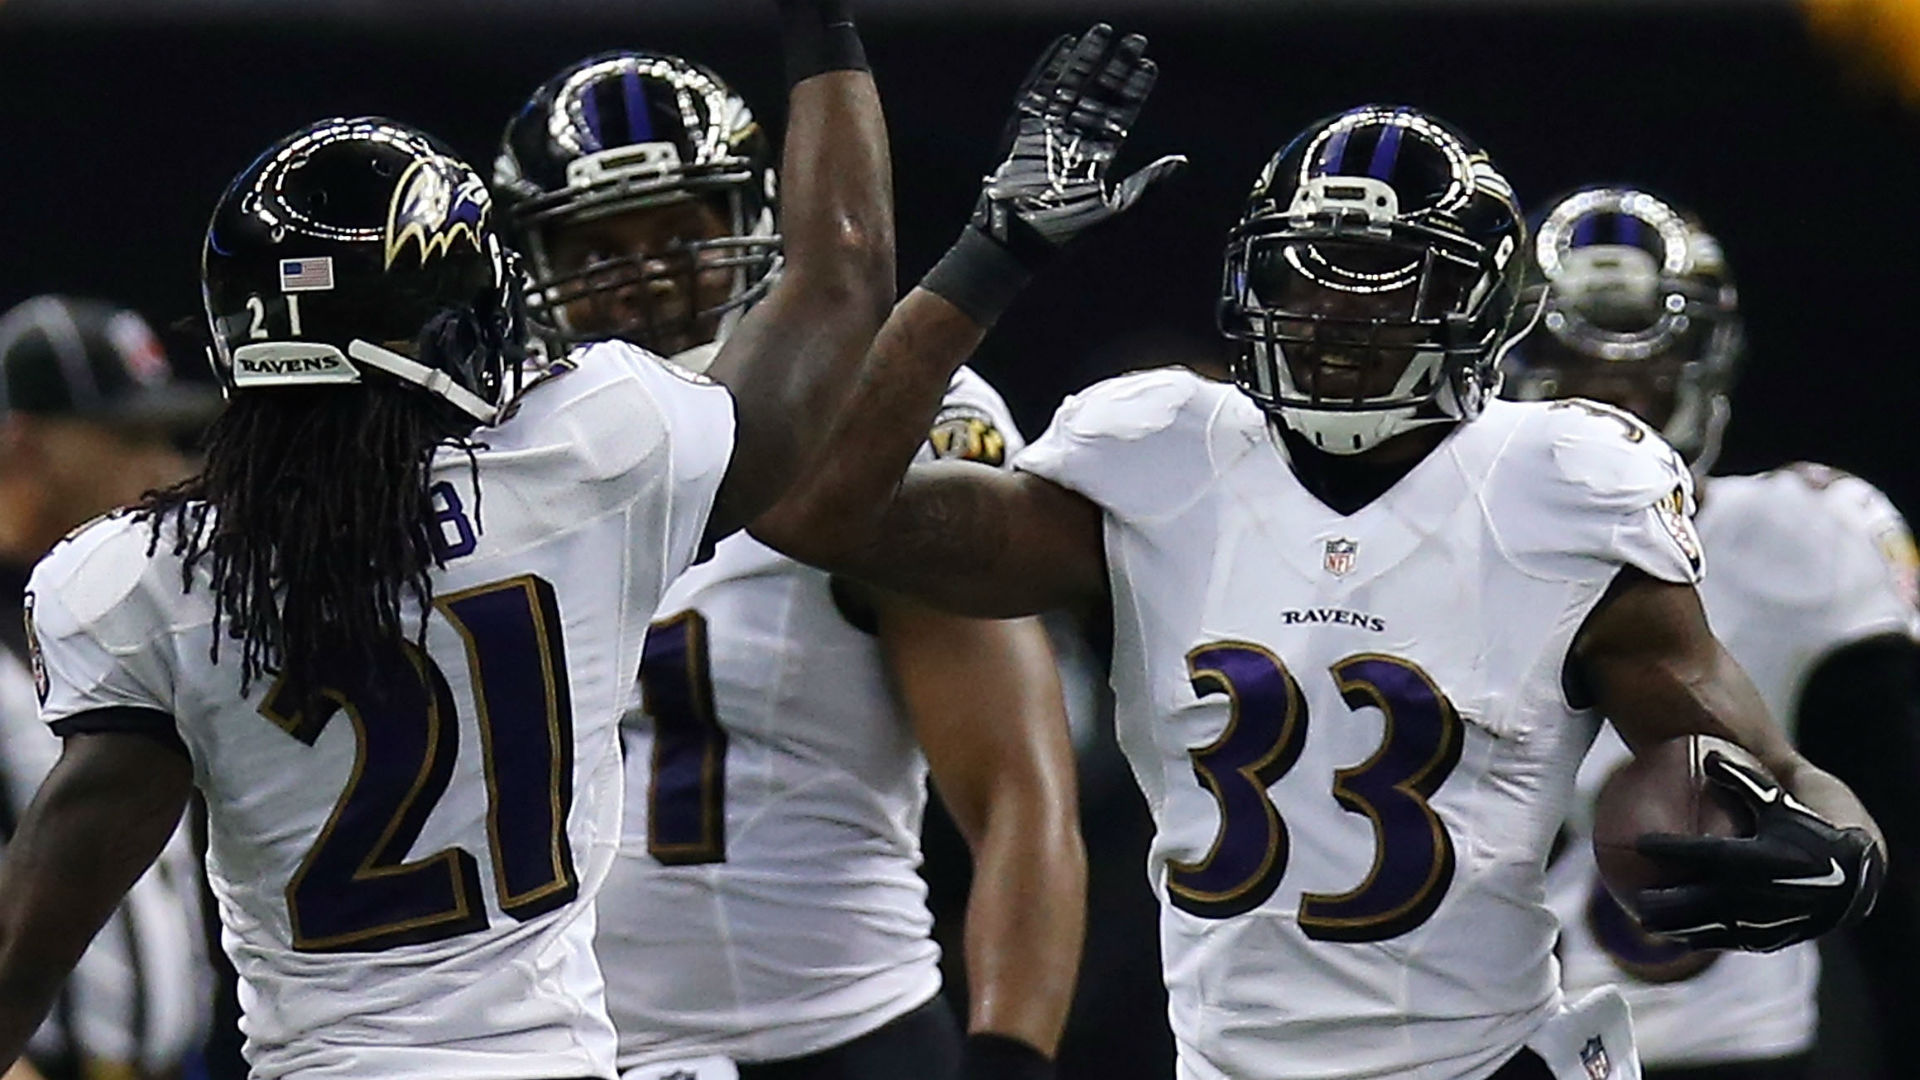 Ravens' Will Hill wanted for failure to pay child support: report ...